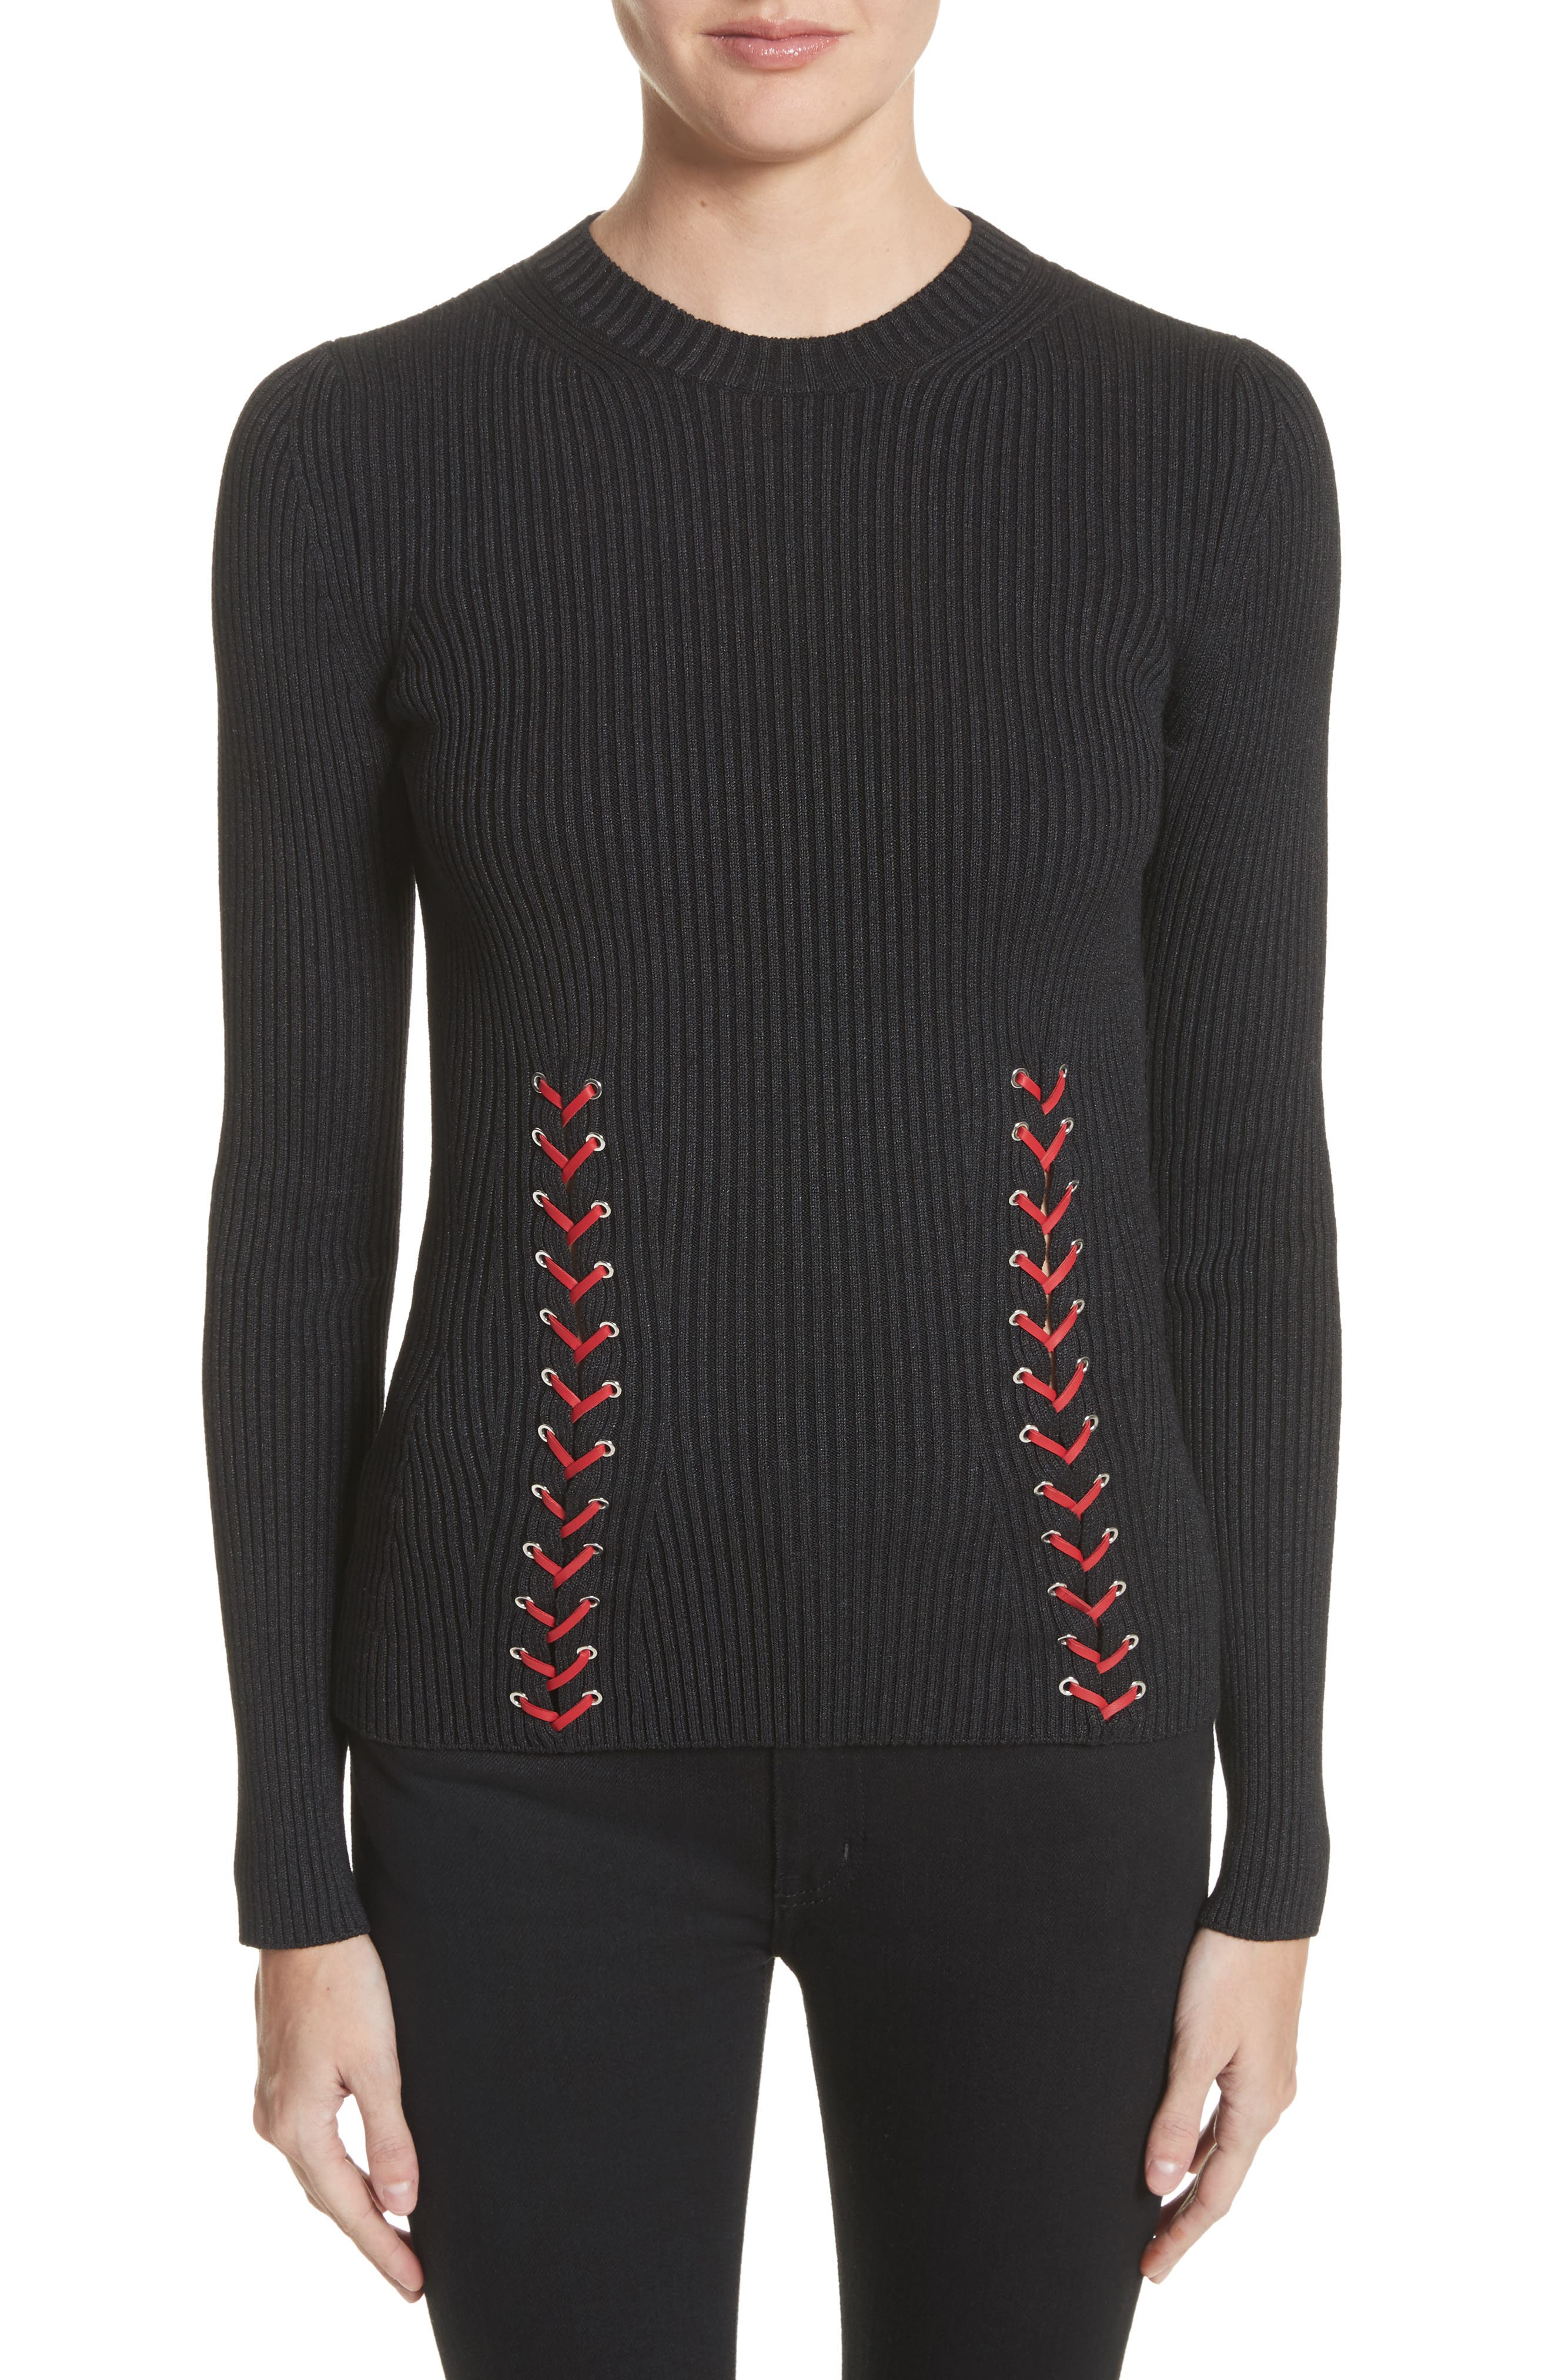 Leather Braid Silk Blend Sweater,                         Main,                         color, Black/ Red